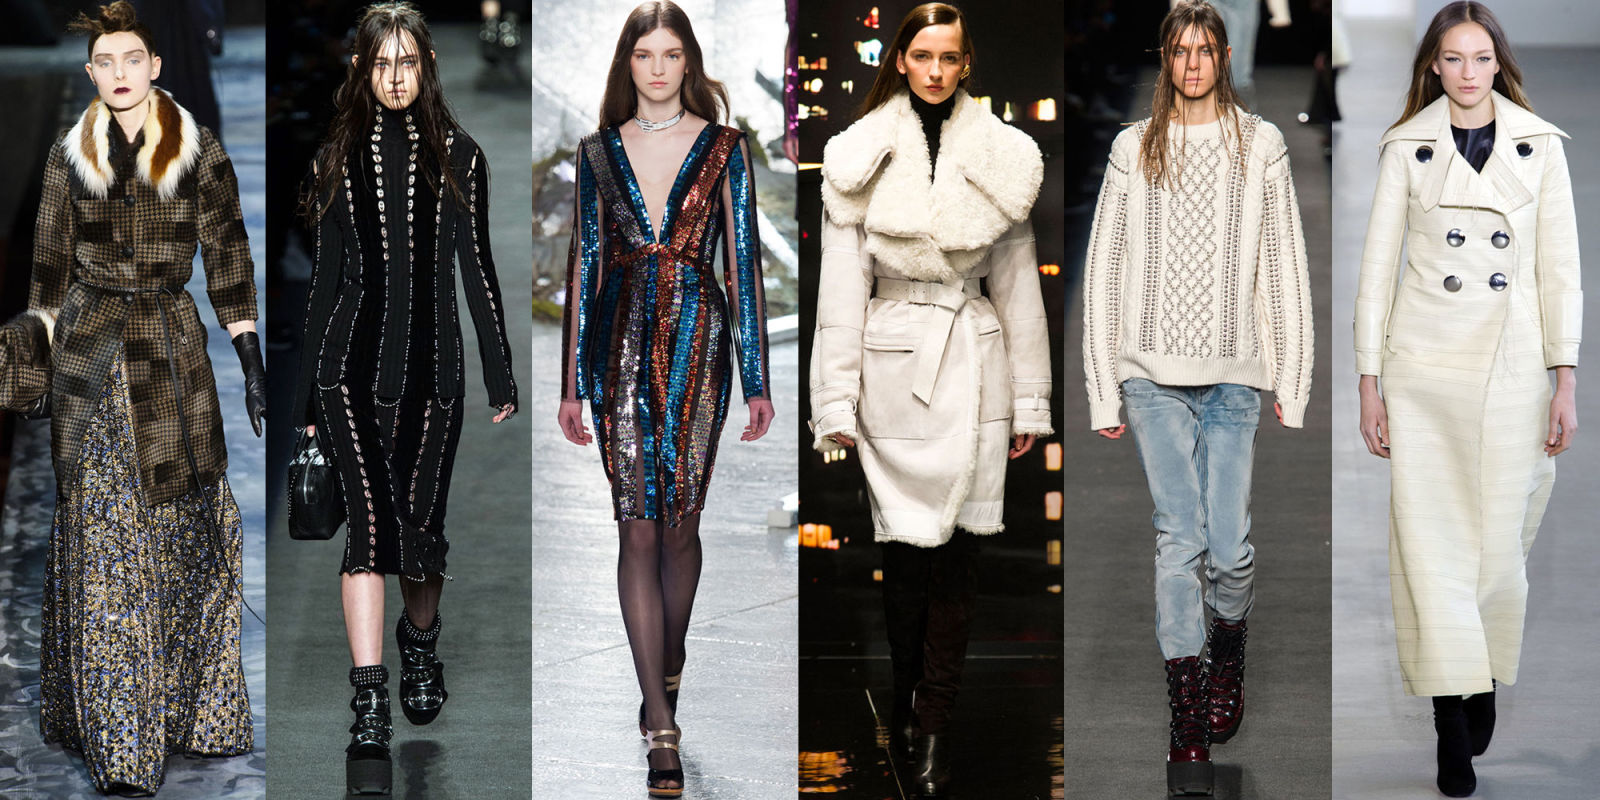 Fall 2015 fashion trends from the runway new york fashion week